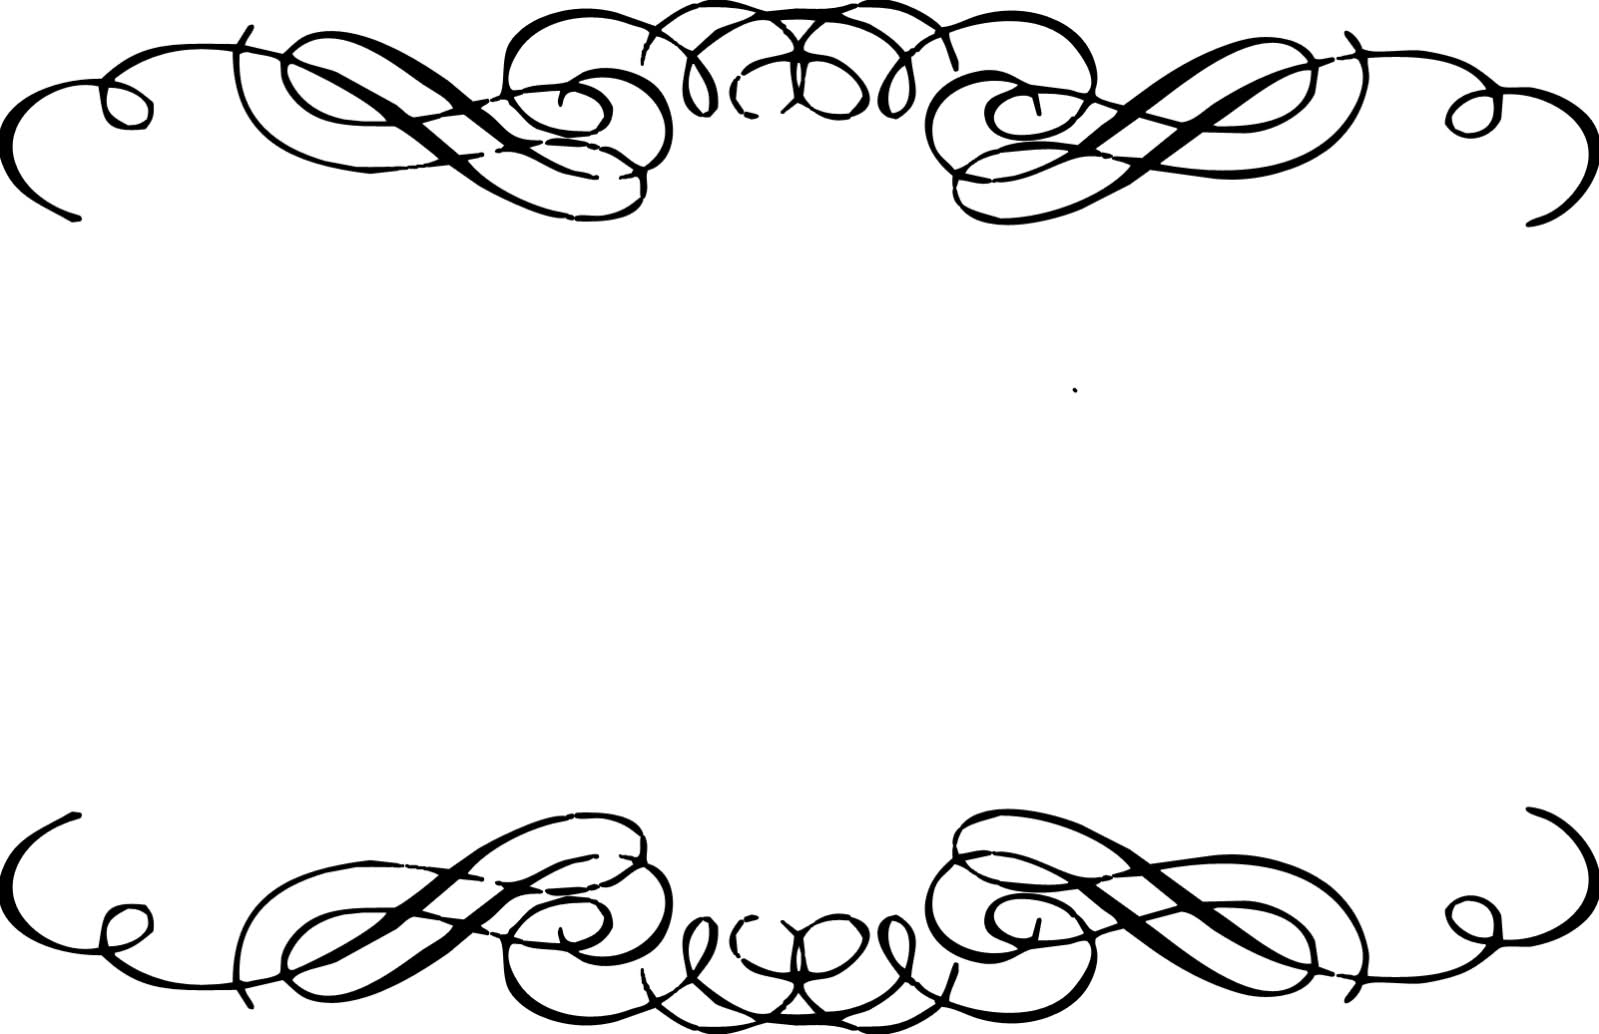 Clip art borders free banner free Free Clip Art Borders Wedding | Clipart Panda - Free Clipart Images banner free